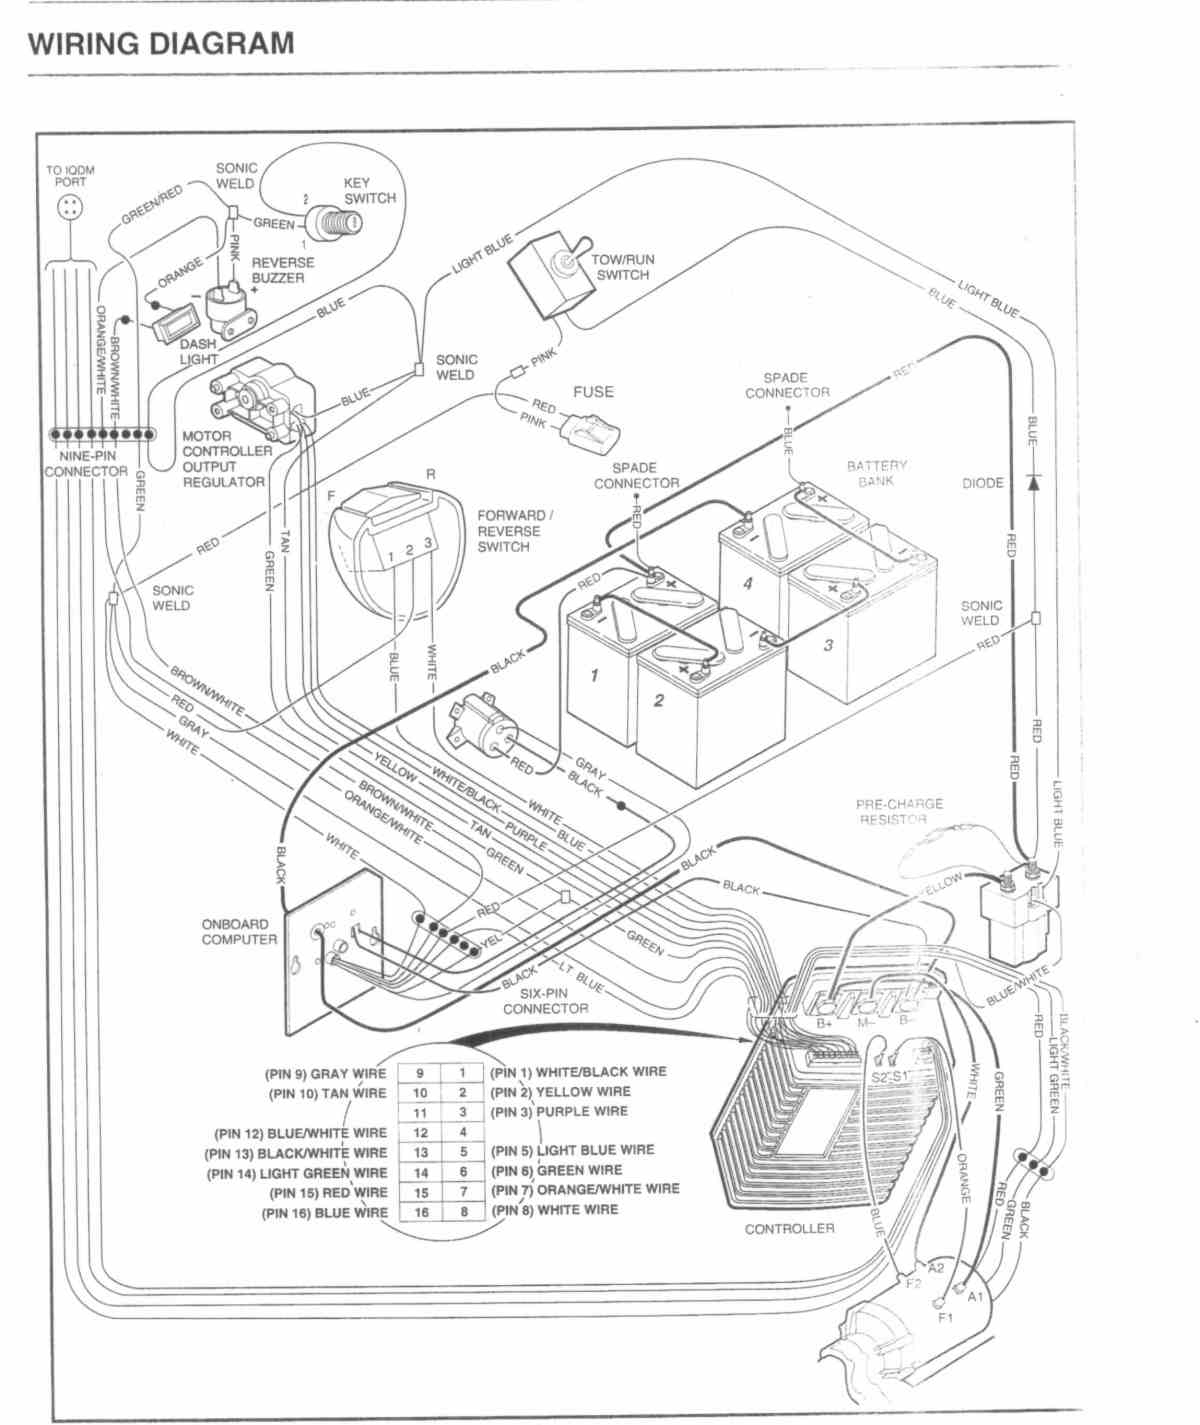 club car iq wiring diagram v on 2008 club car charger plug fuse,